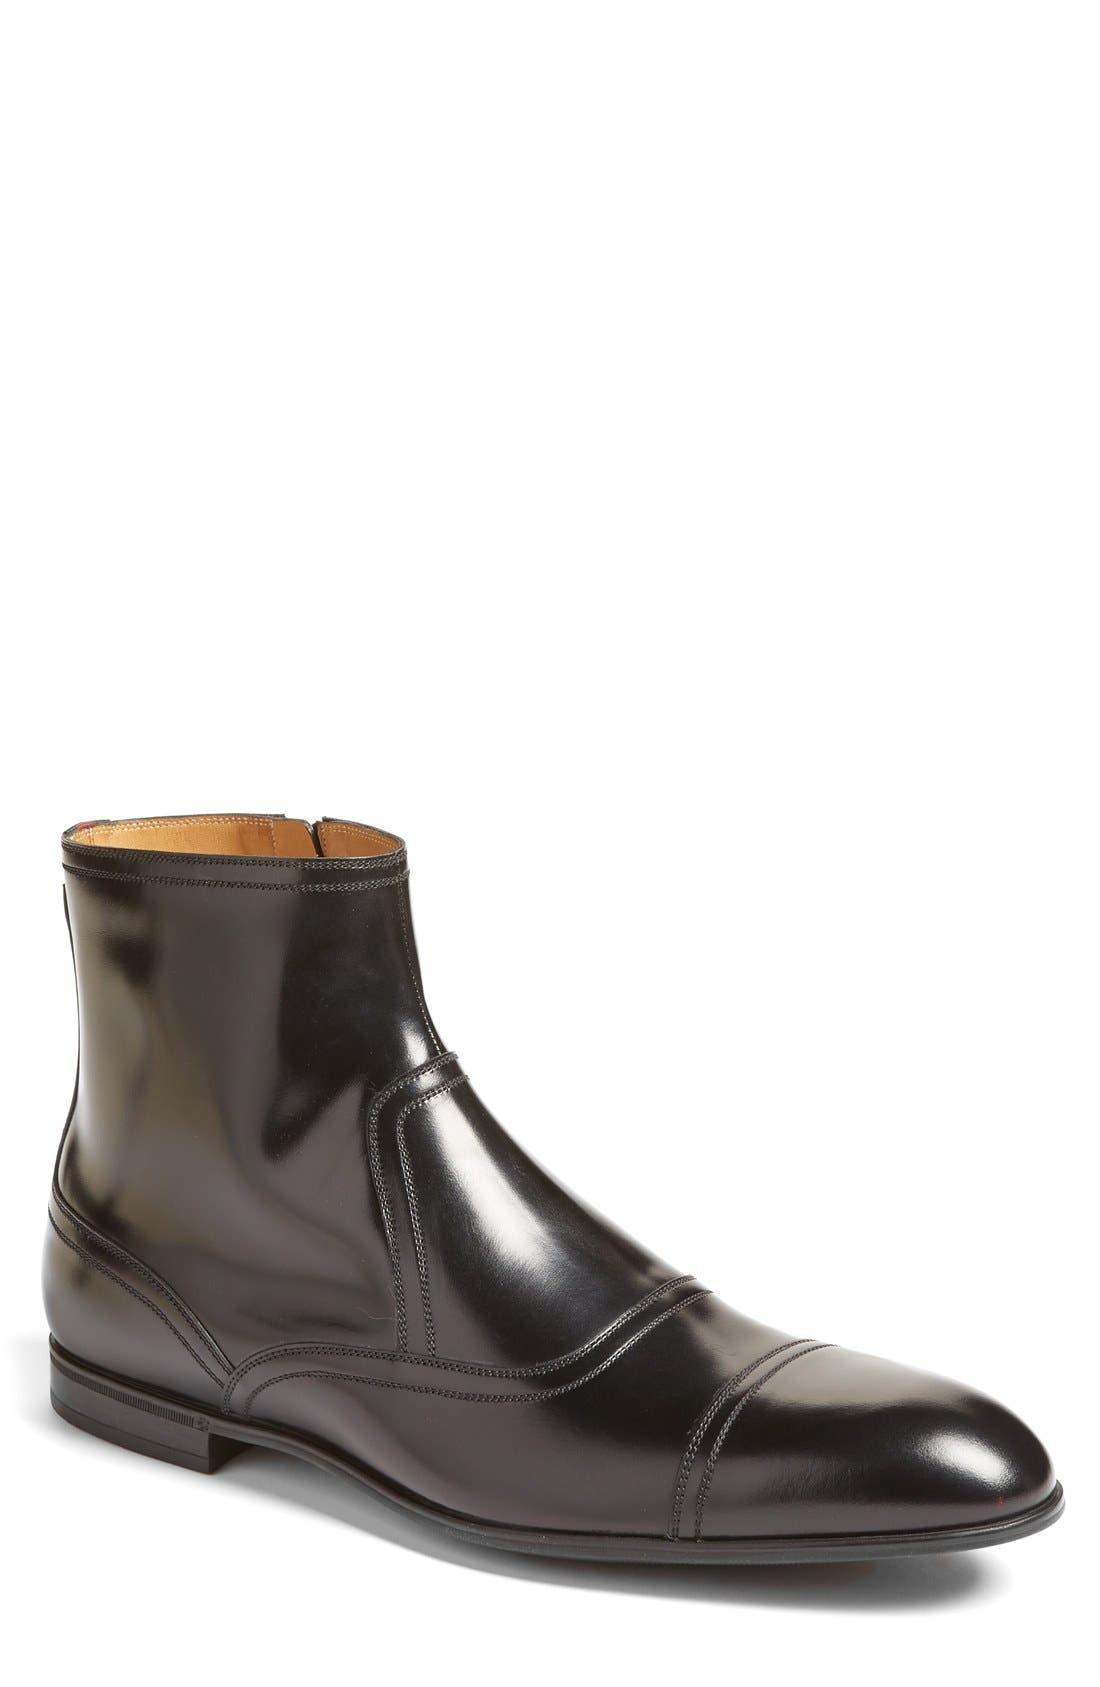 Ravello Zip Boot,                             Main thumbnail 1, color,                             Nero Leather